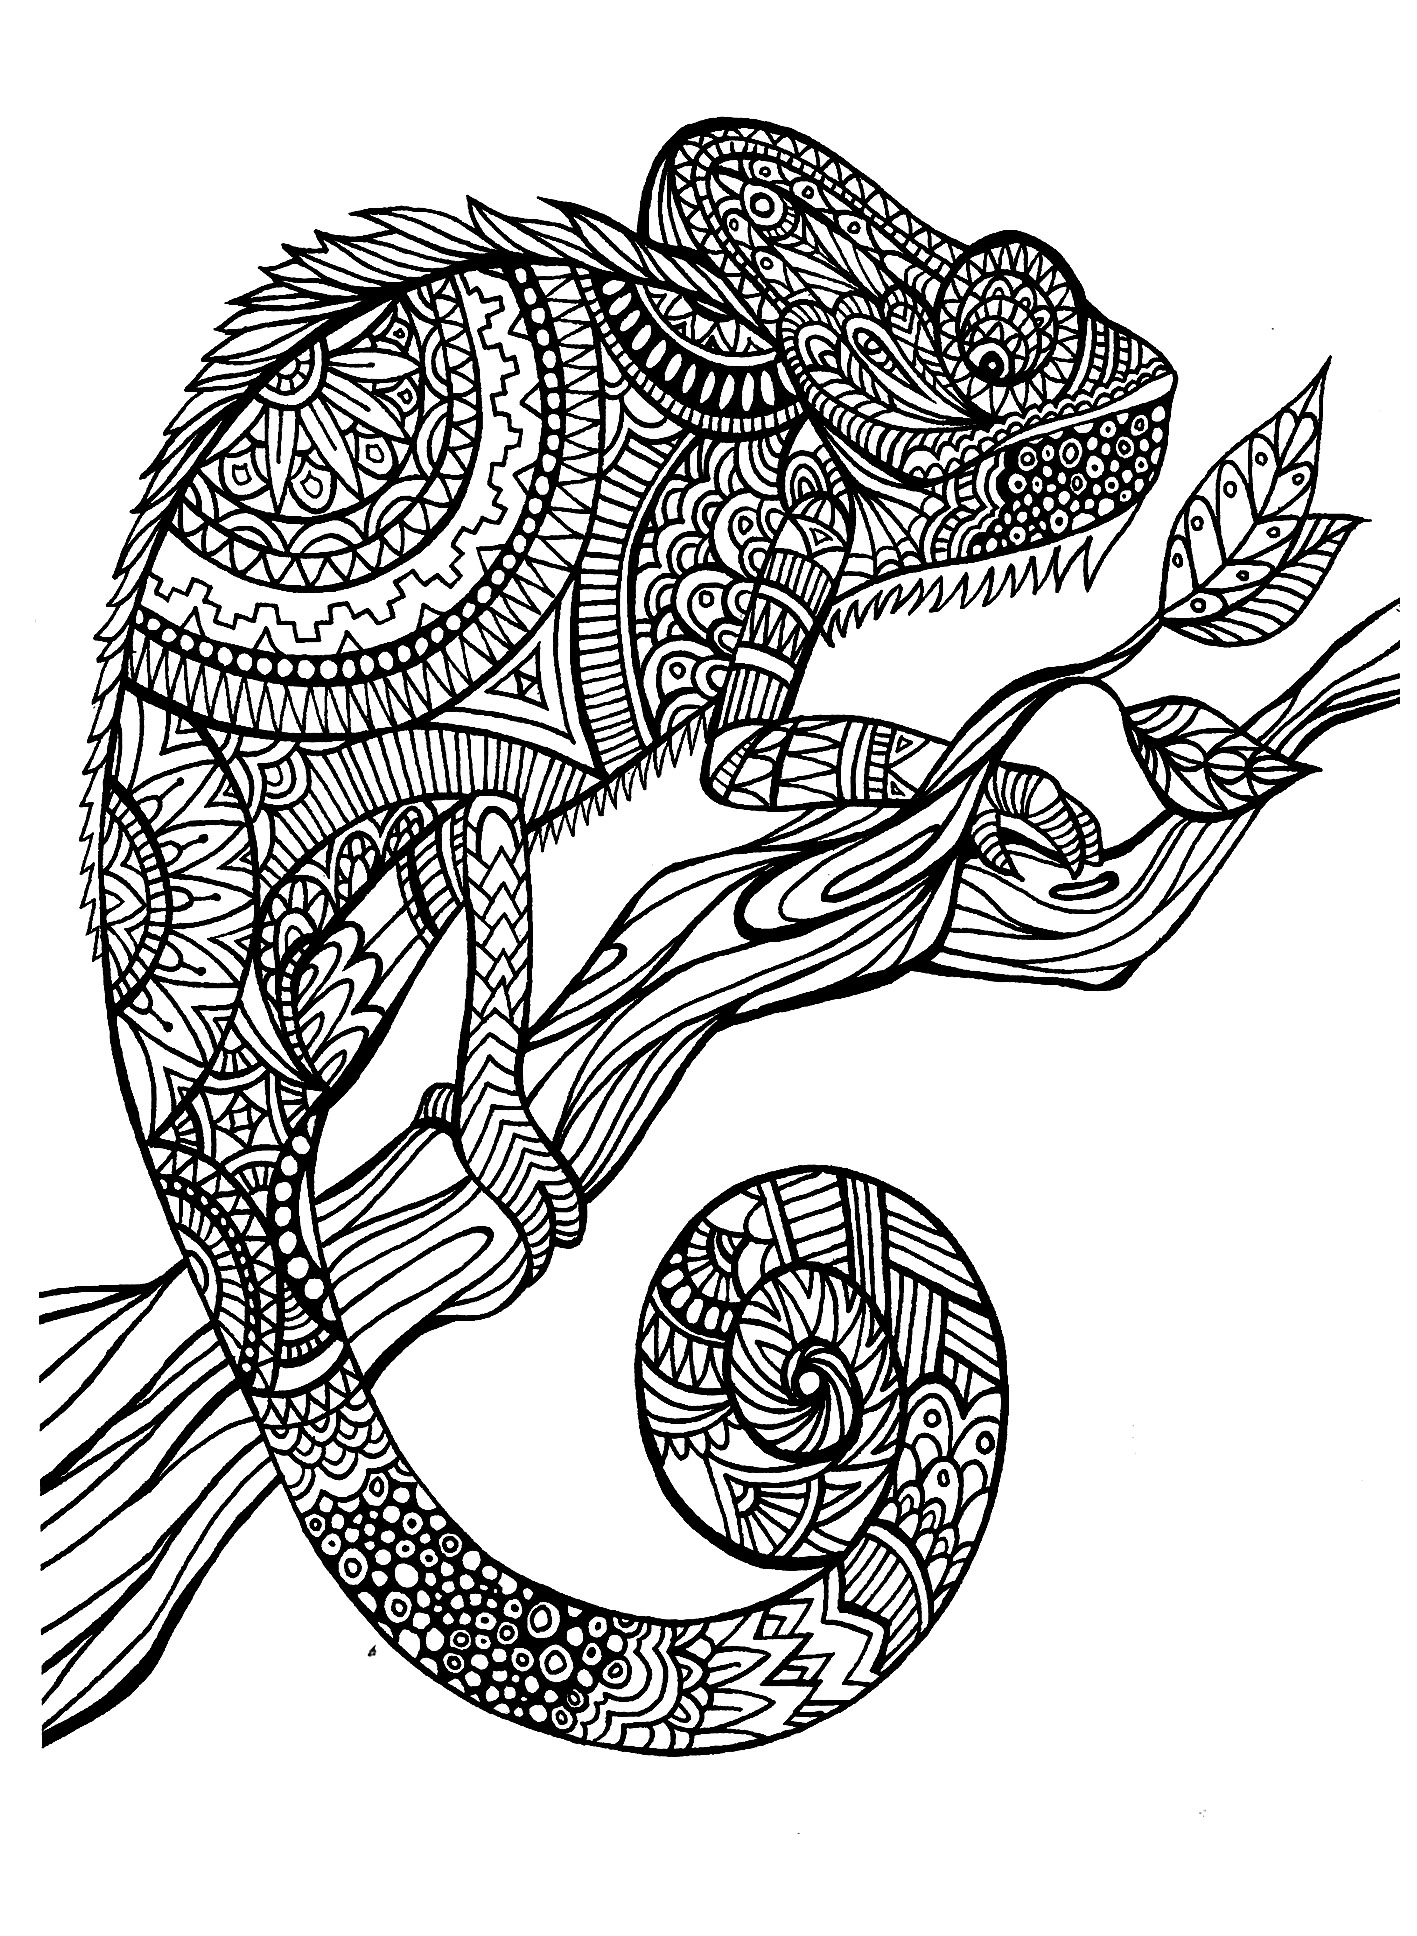 Cameleon patterns | Chameleons and lizards - Coloring pages for ...